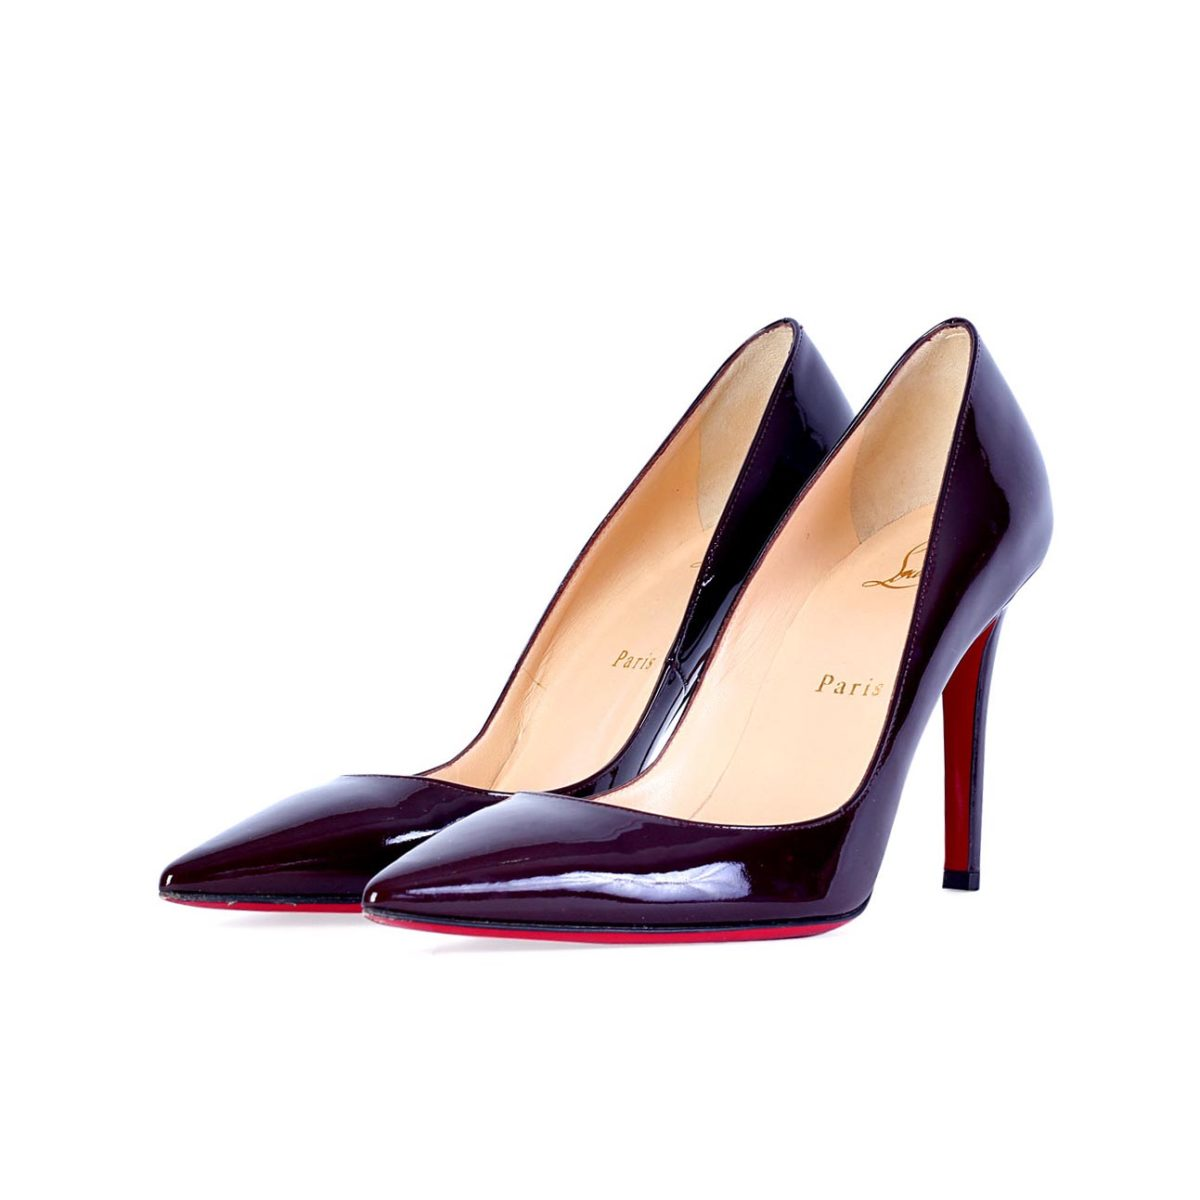 4c71ec2e42d CHRISTIAN LOUBOUTIN Pigalle 100mm Patent Leather Shoes maroon – S ...